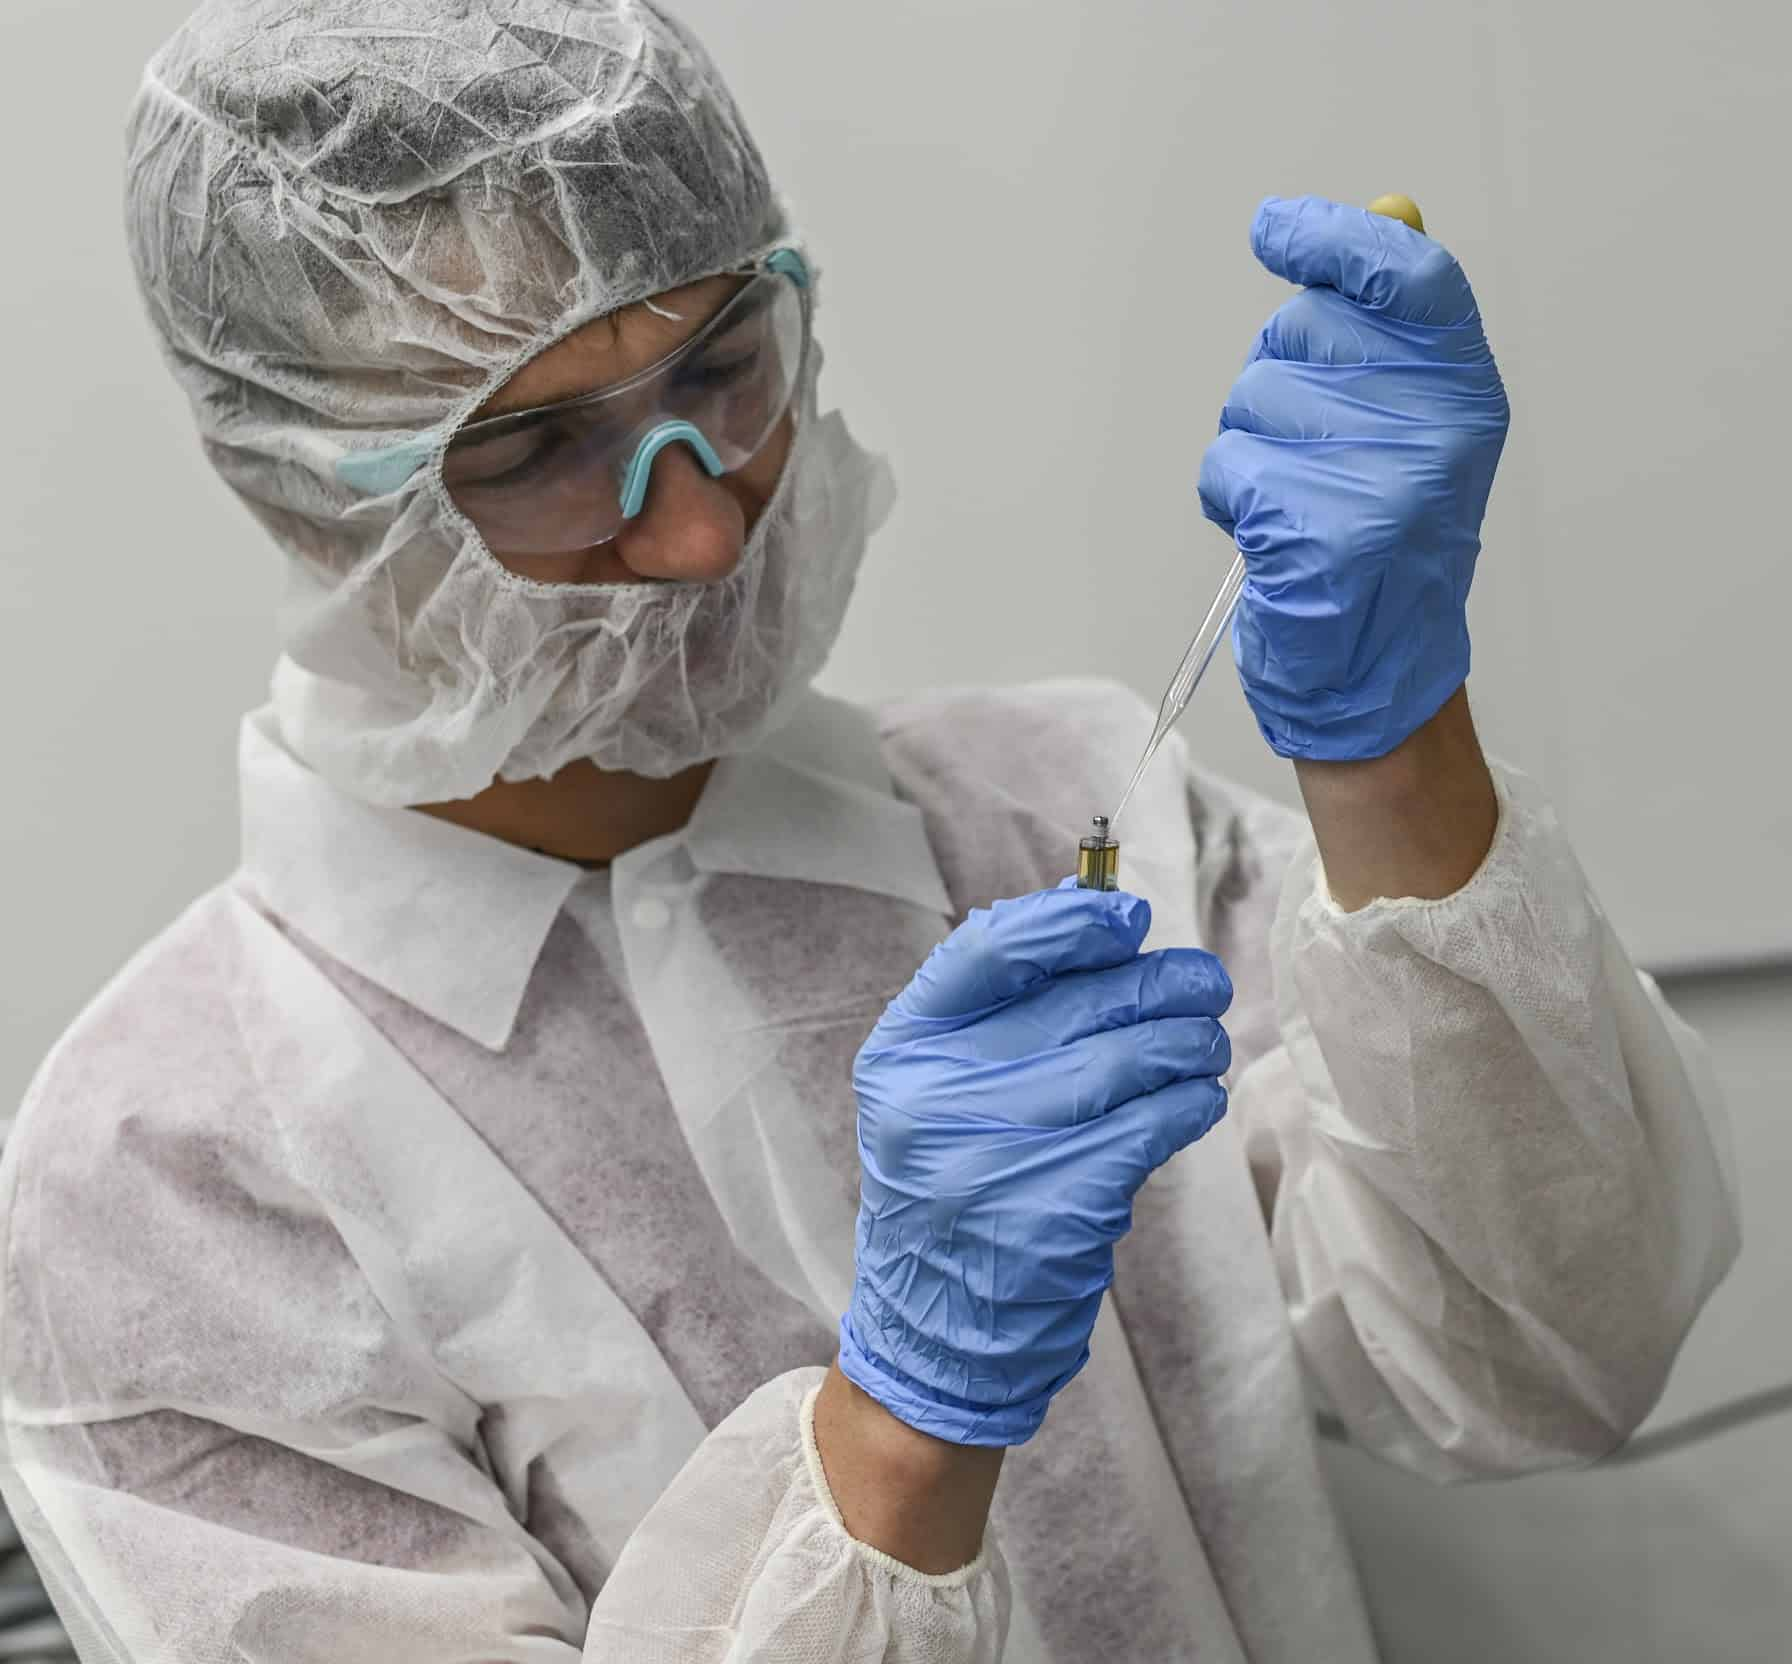 man in lab coat checking solution